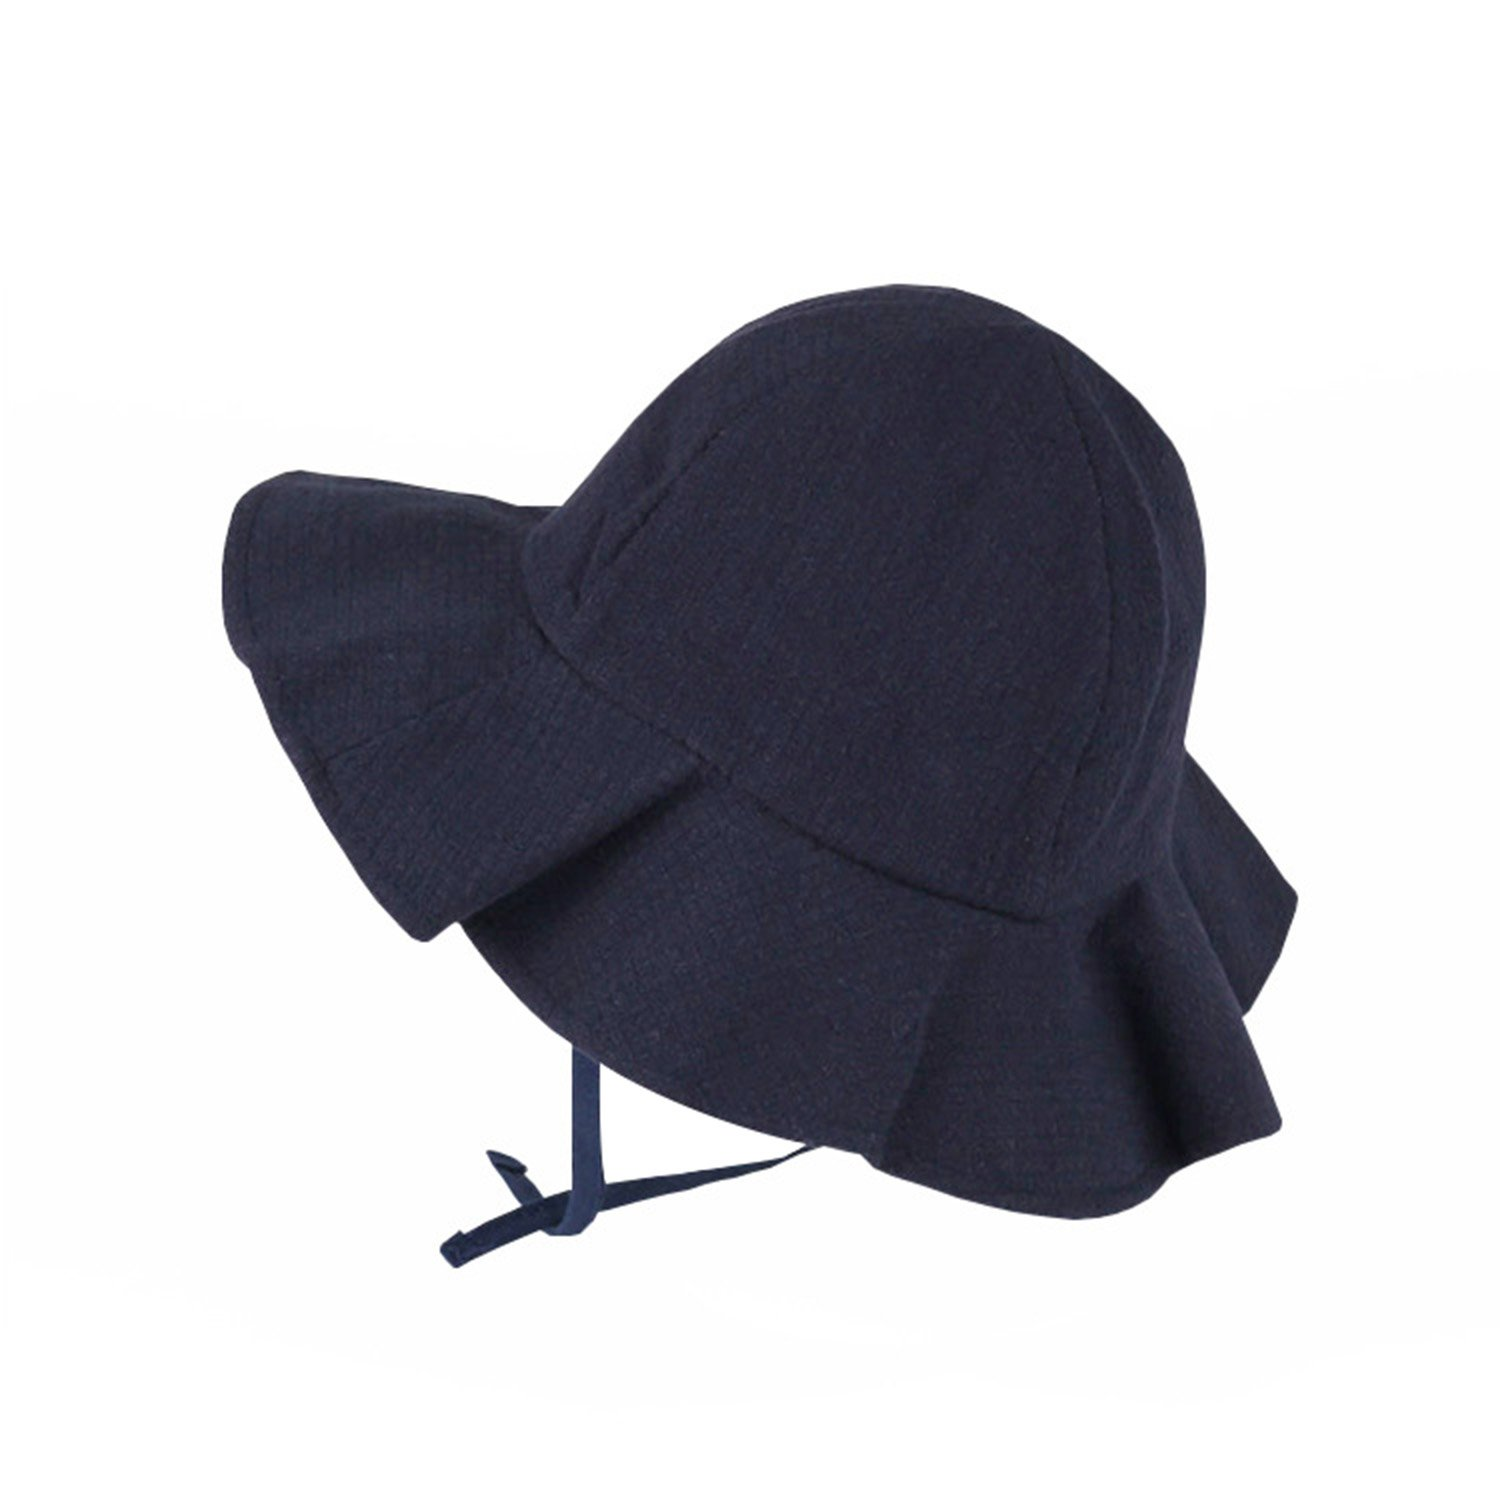 50+ UPF Floppy Hat for Kid Chin Strap Sun Protection Hat Breathable Brim Bucket Hat Adjustable for Grow (21.06, Dark Blue)